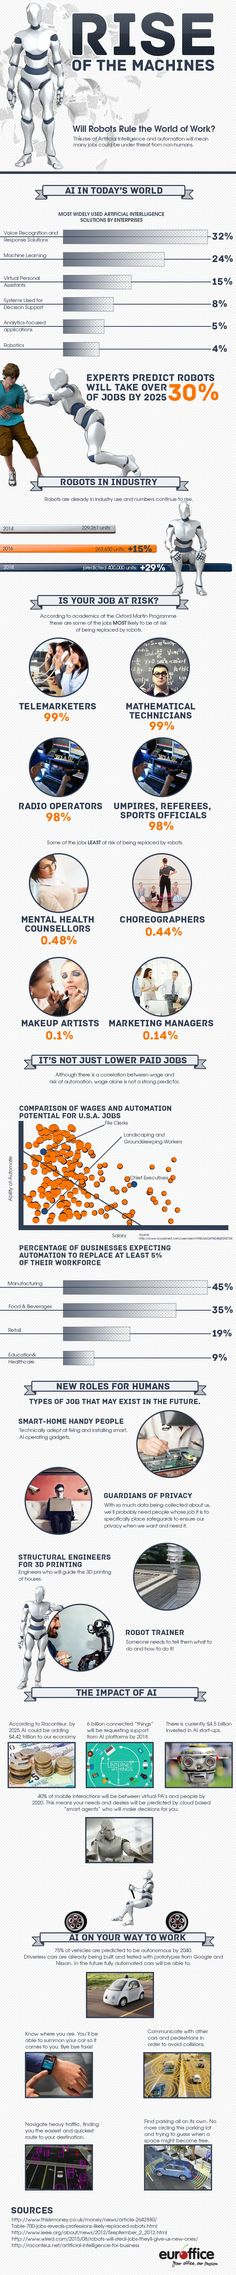 Rise of the Machines #Infographic #Robots #Technology